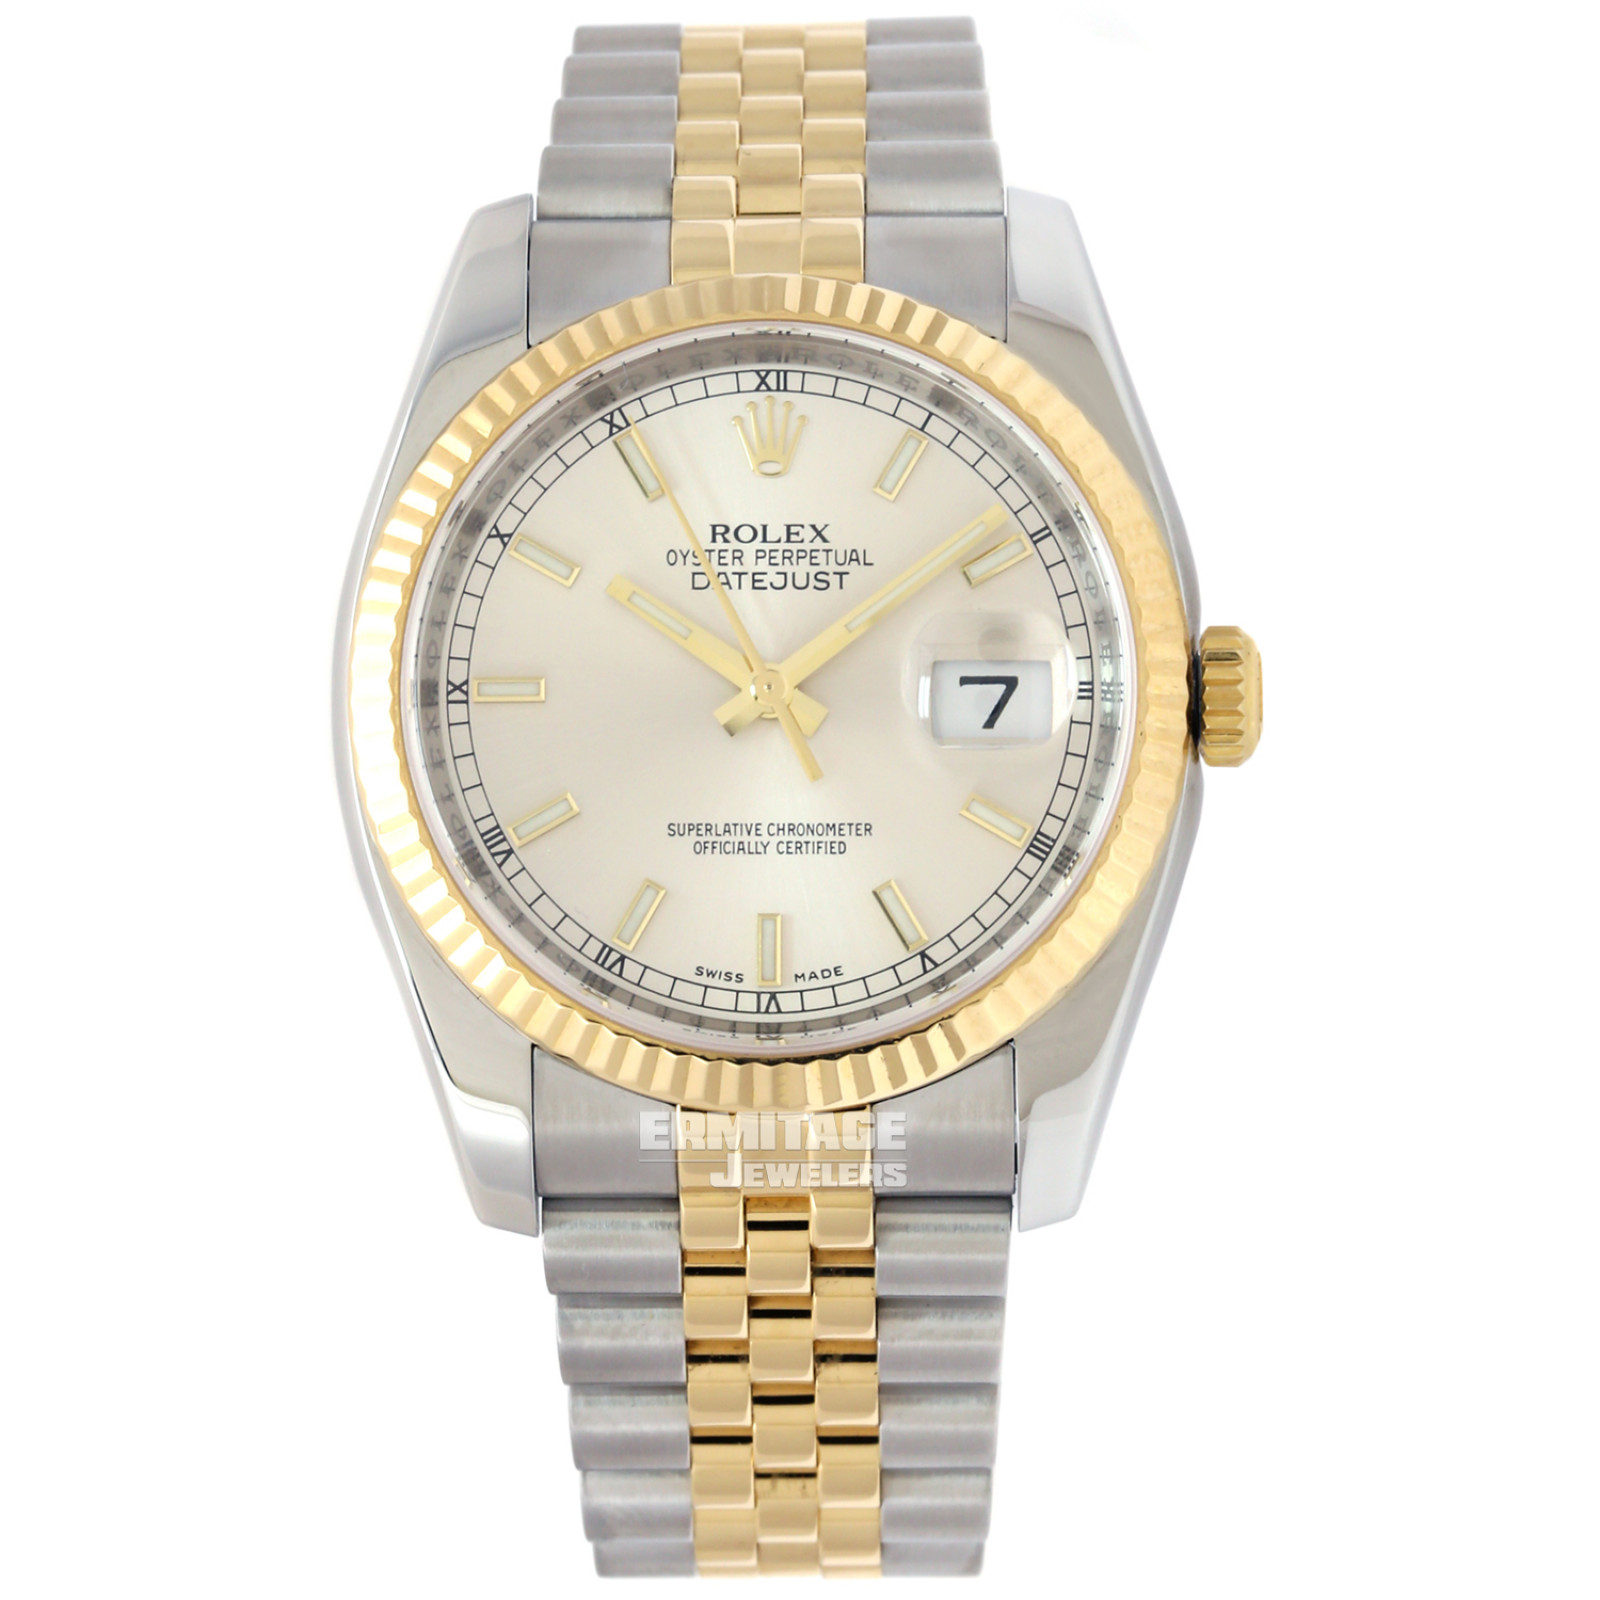 Rolex Datejust 116233 with Silver Dial